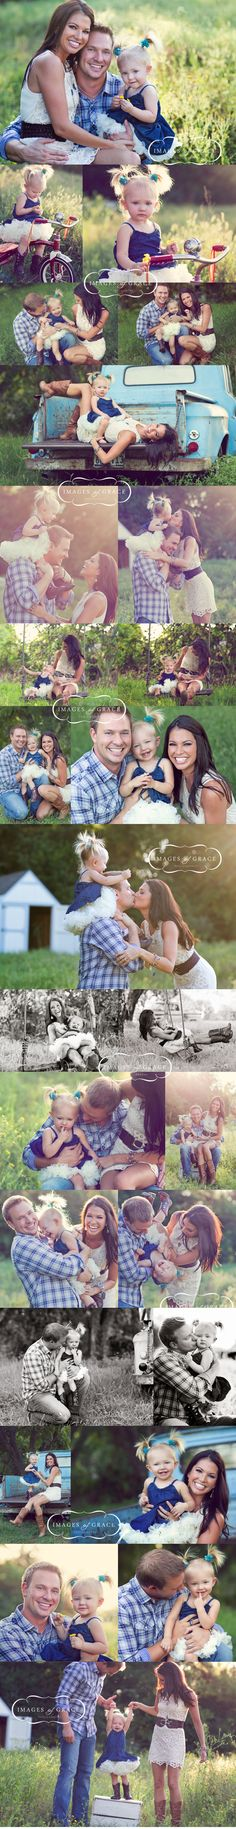 Cute #family #poses for #photography #sessions